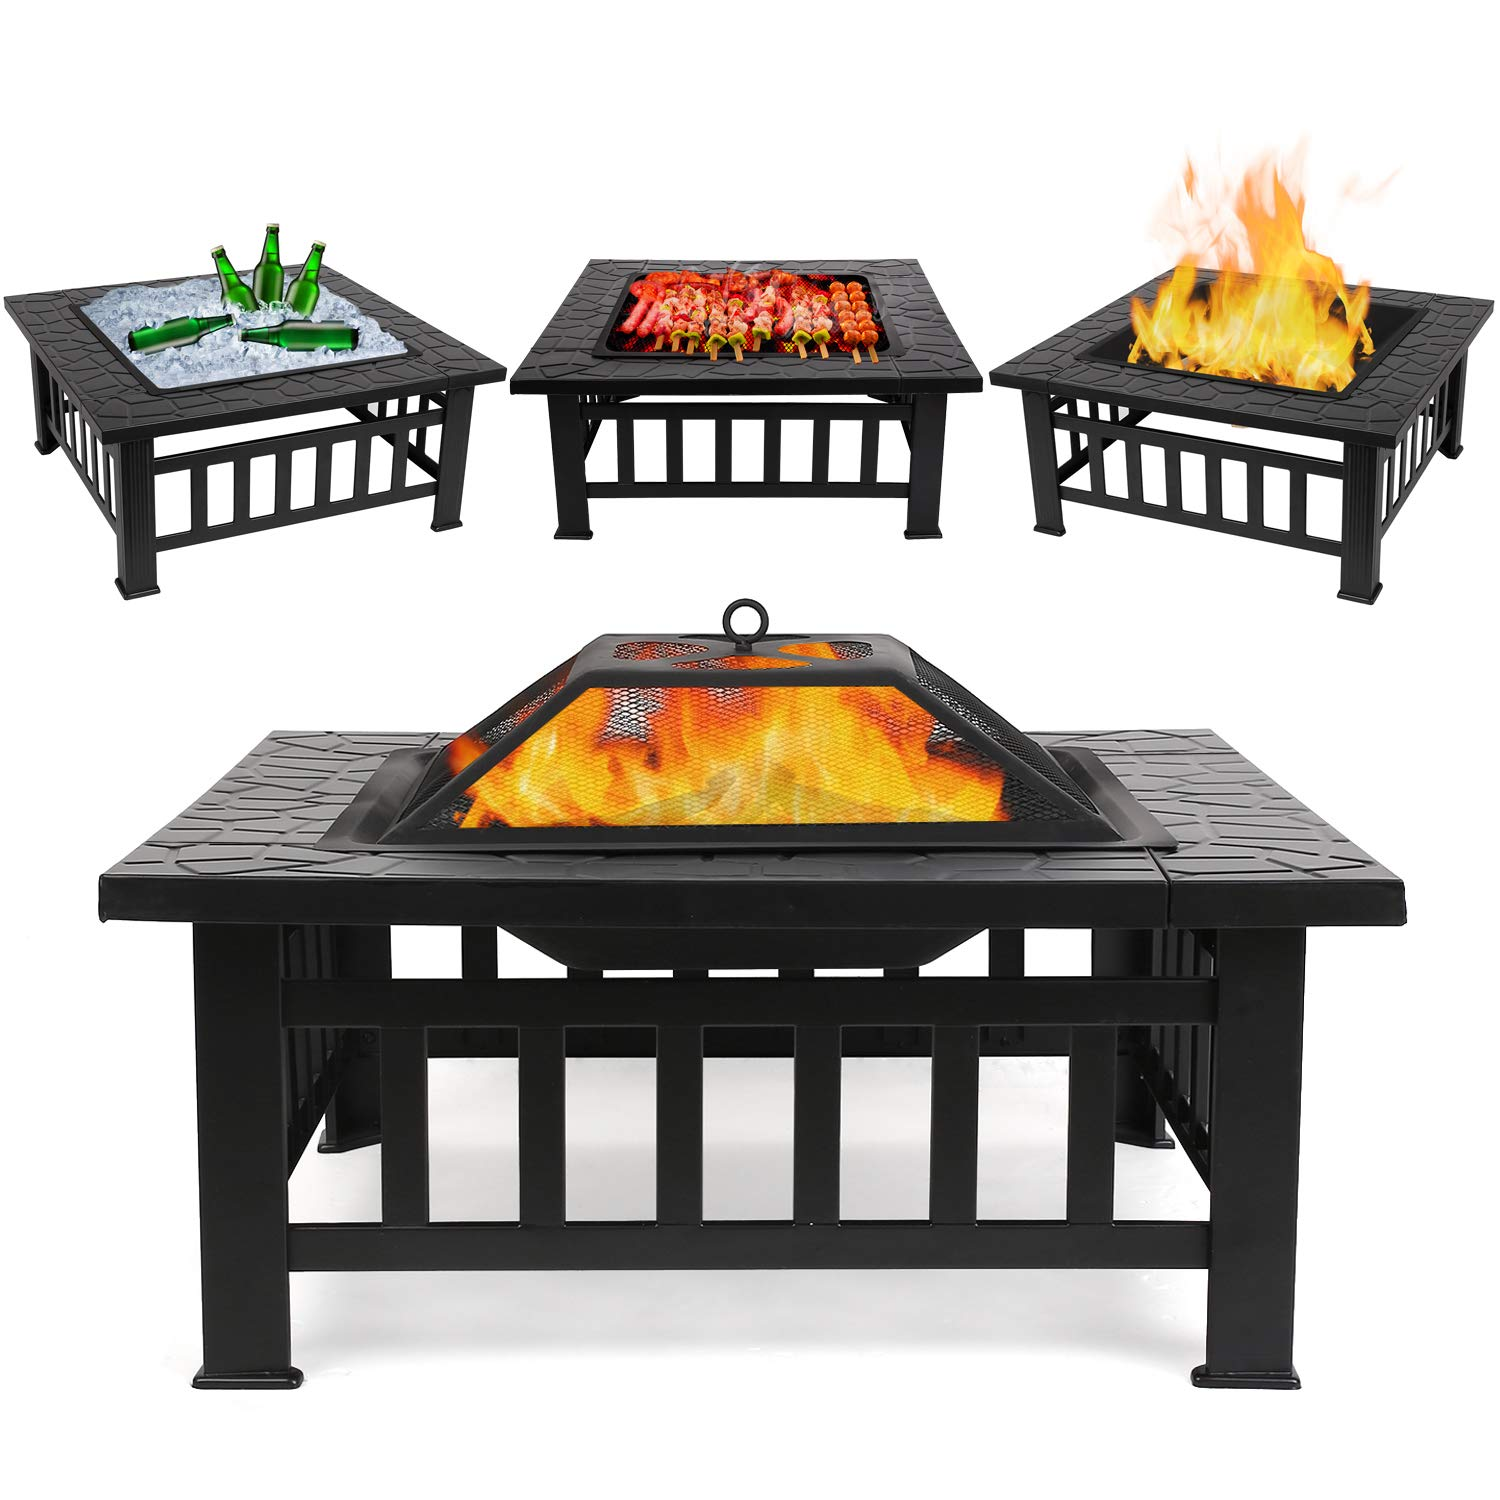 fixkit fire pit table outdoor with bbq grill shelf side multifunctional garden terrace bowl heater ice diameter square fireplace small accent chairs piece nesting tables high